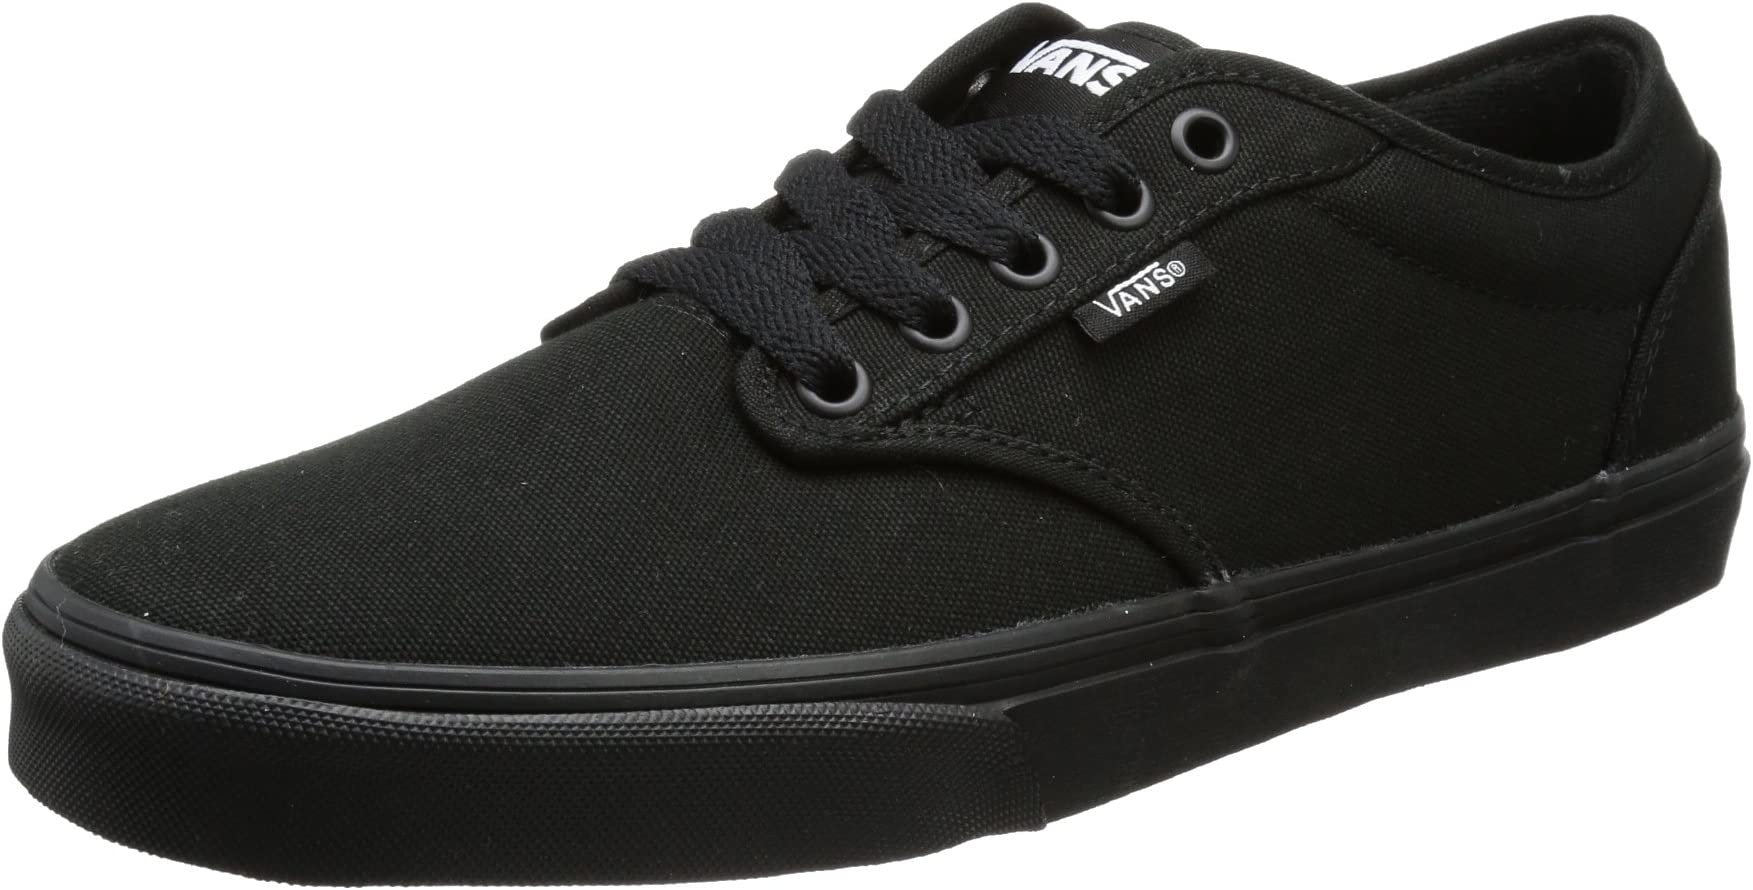 vans men's atwood canvas skate shoes nz